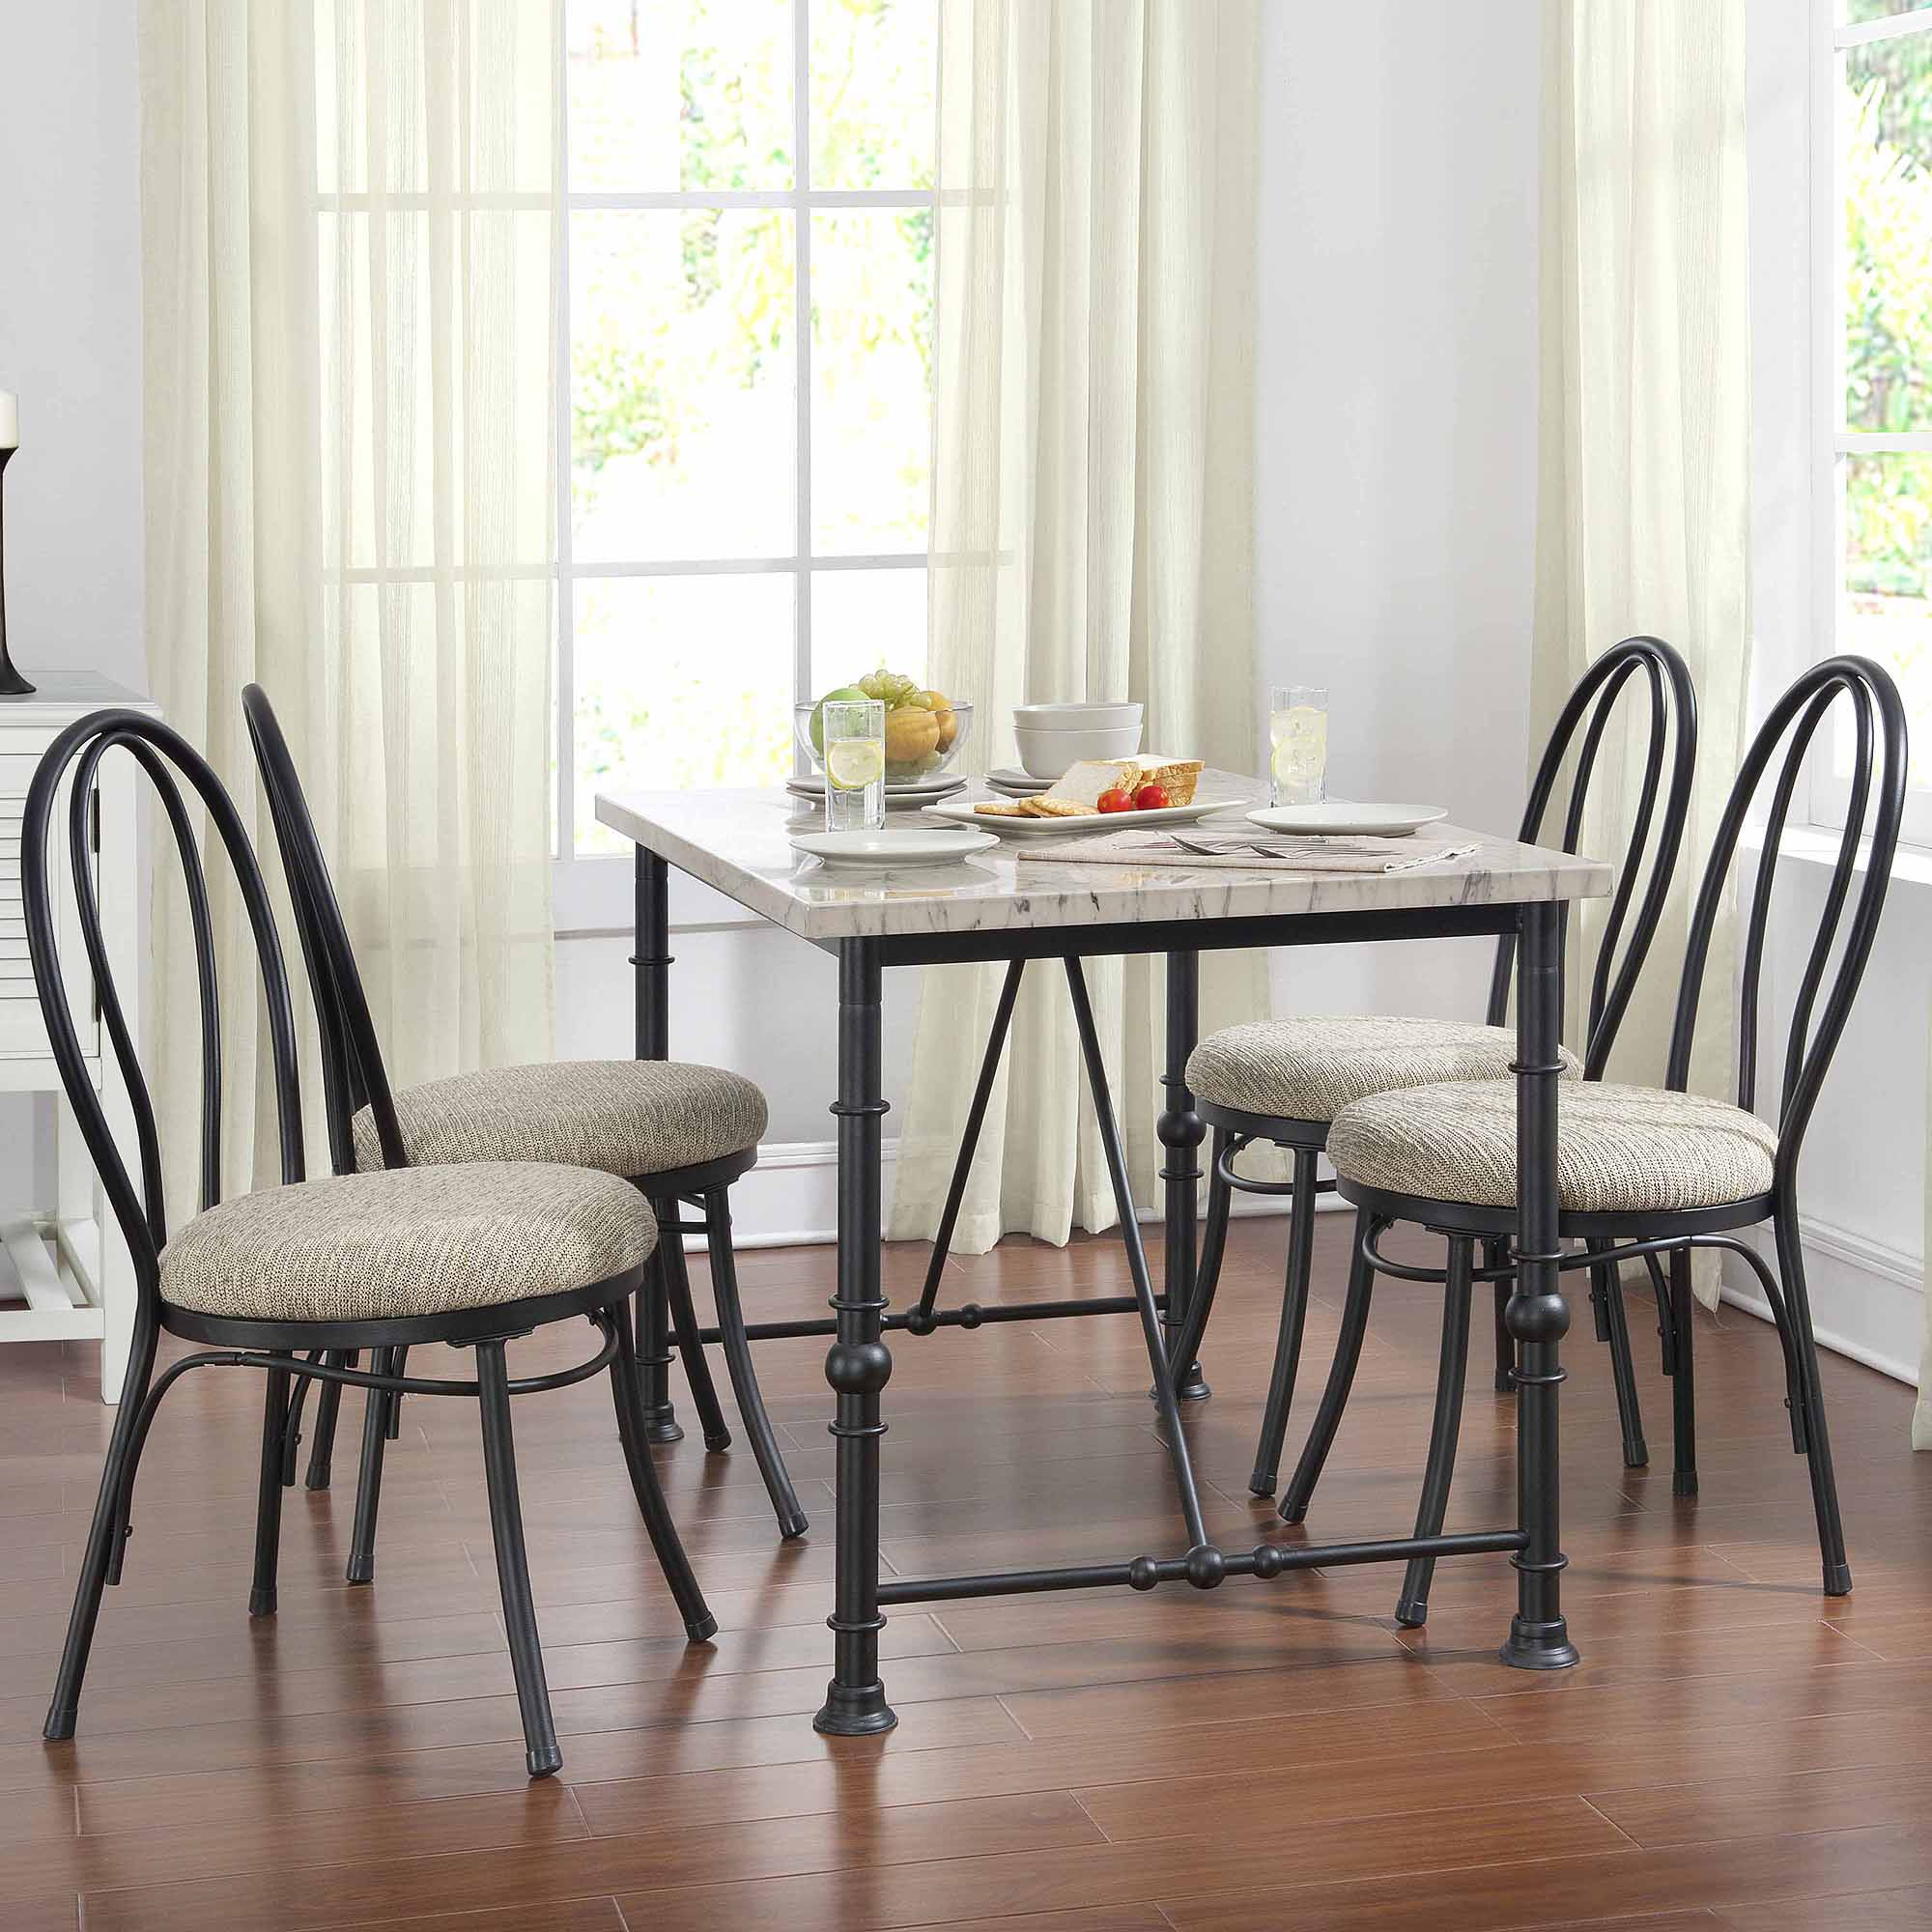 Merveilleux Dorel Asia 5 Piece Metal And Faux Marble Top Dining Set   Walmart.com